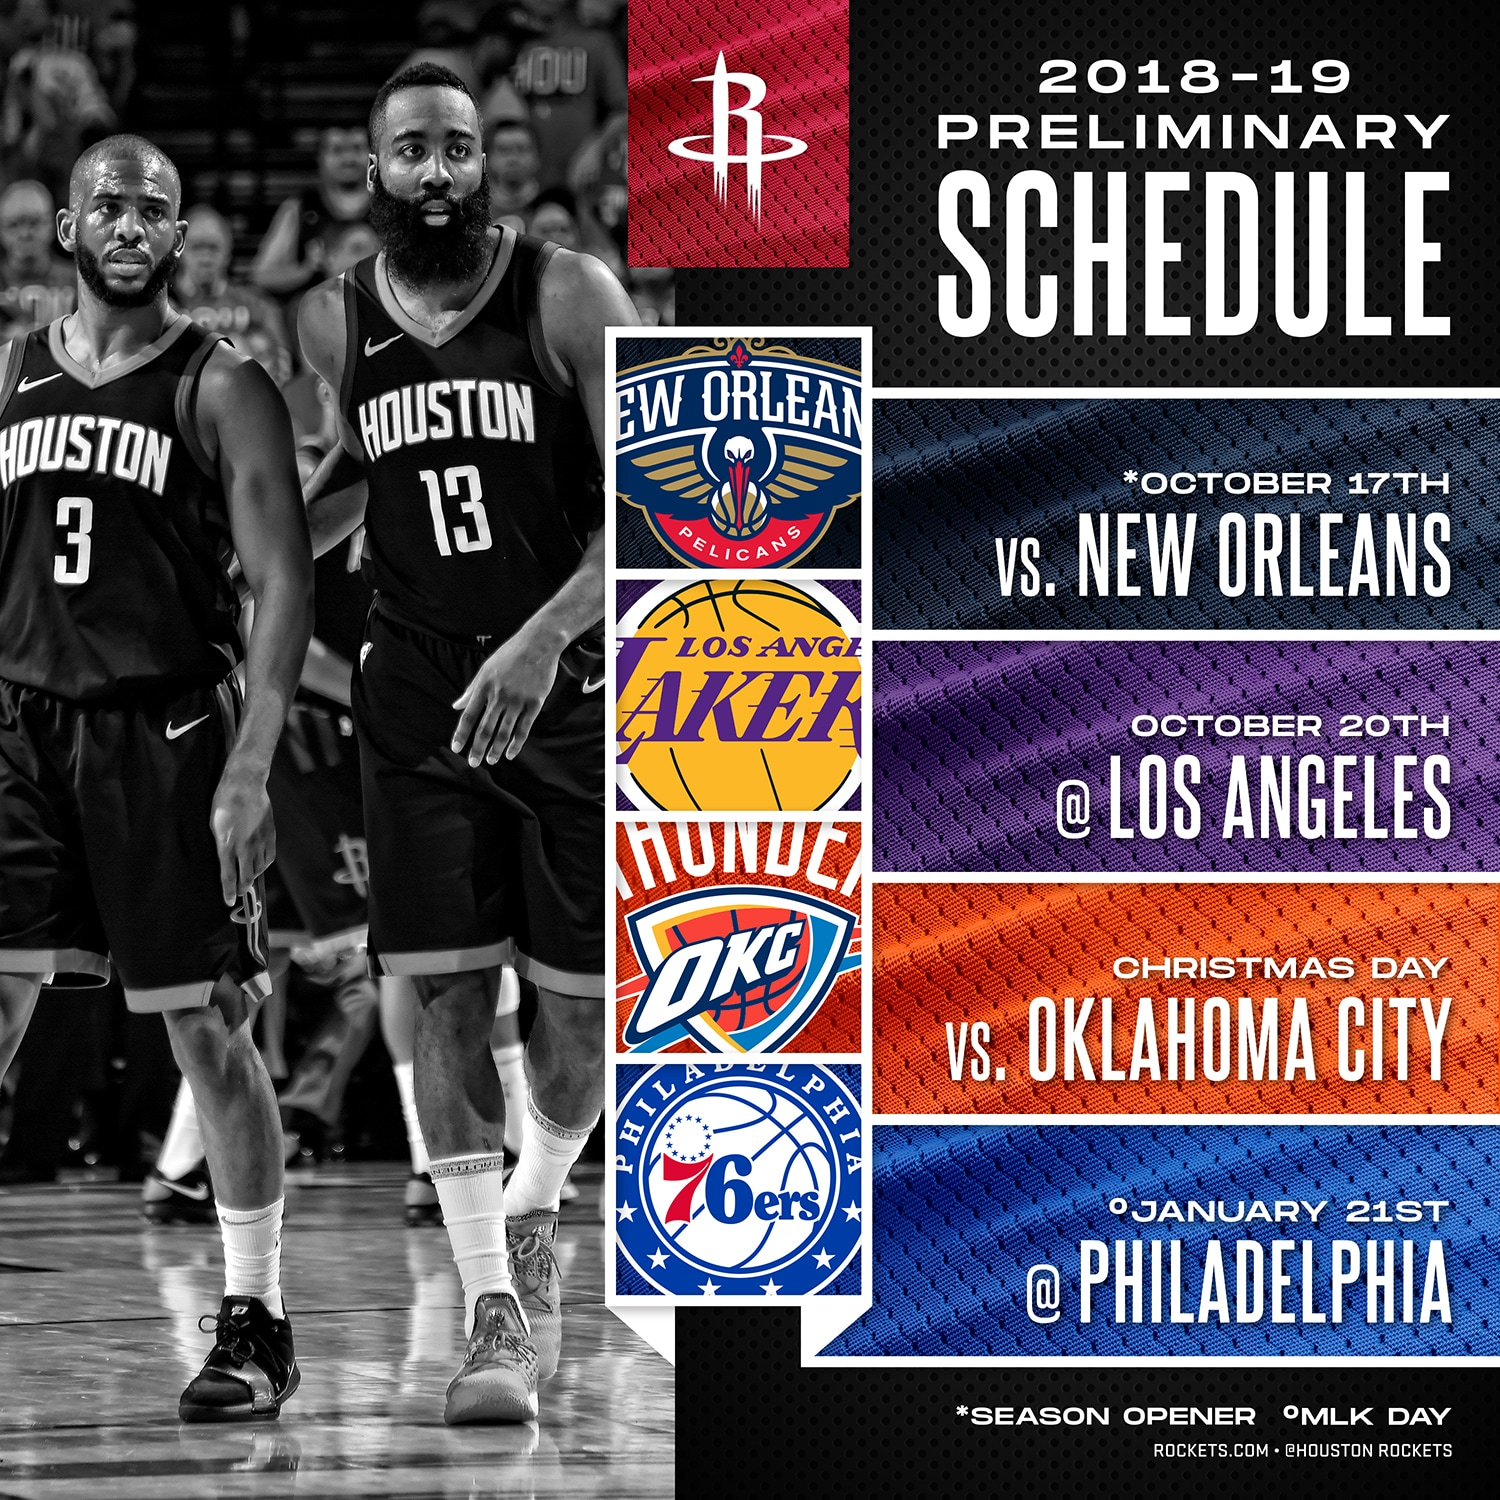 rockets 2018-19 preliminary schedule announced | houston rockets